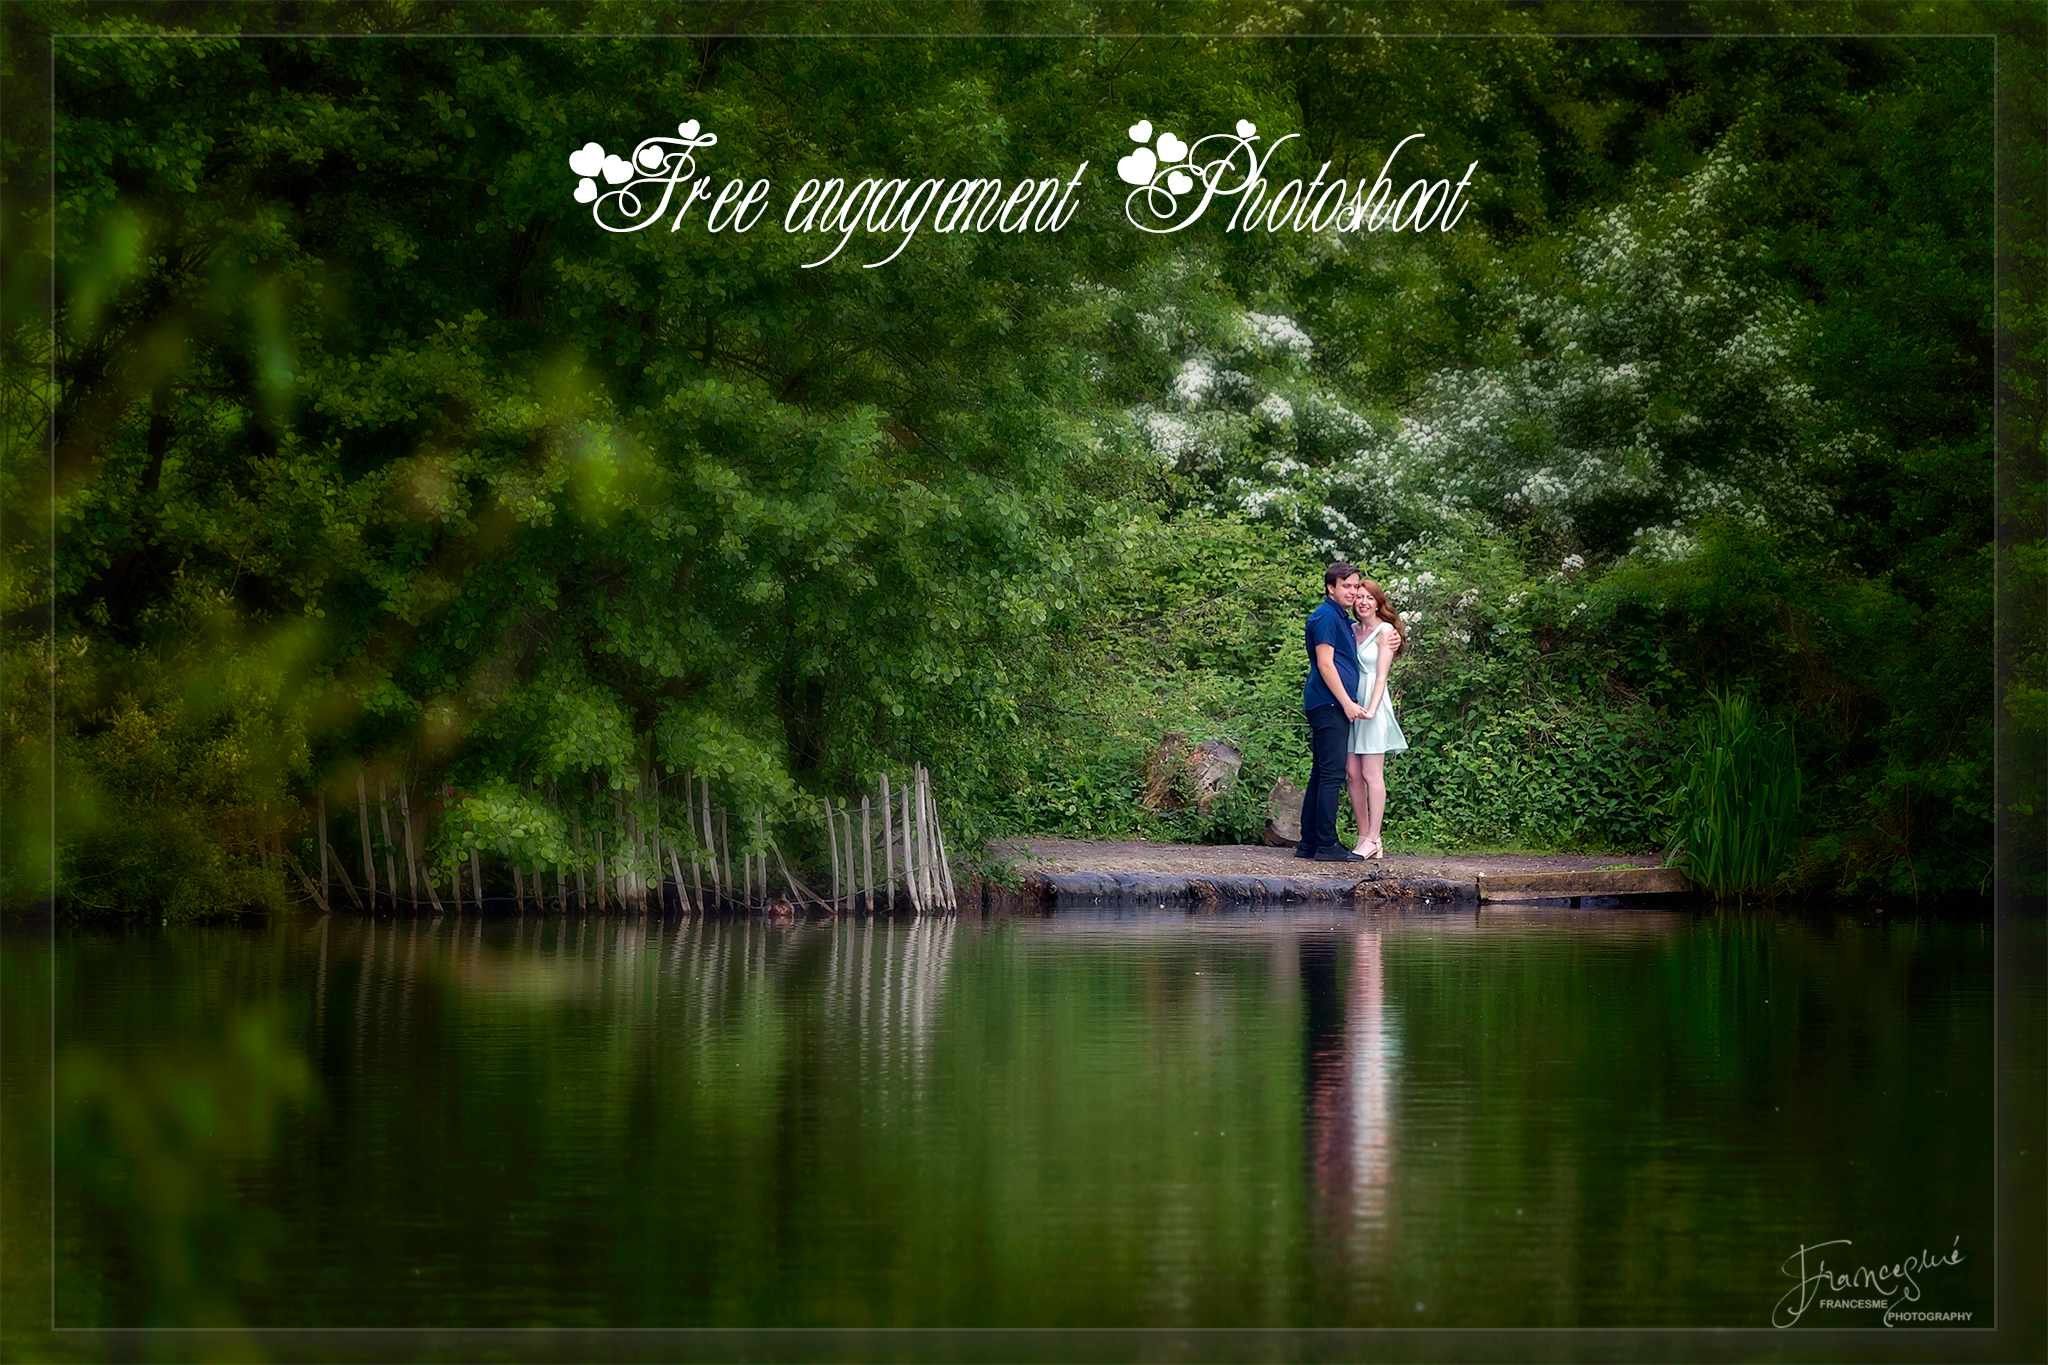 Free engagement photoshoot